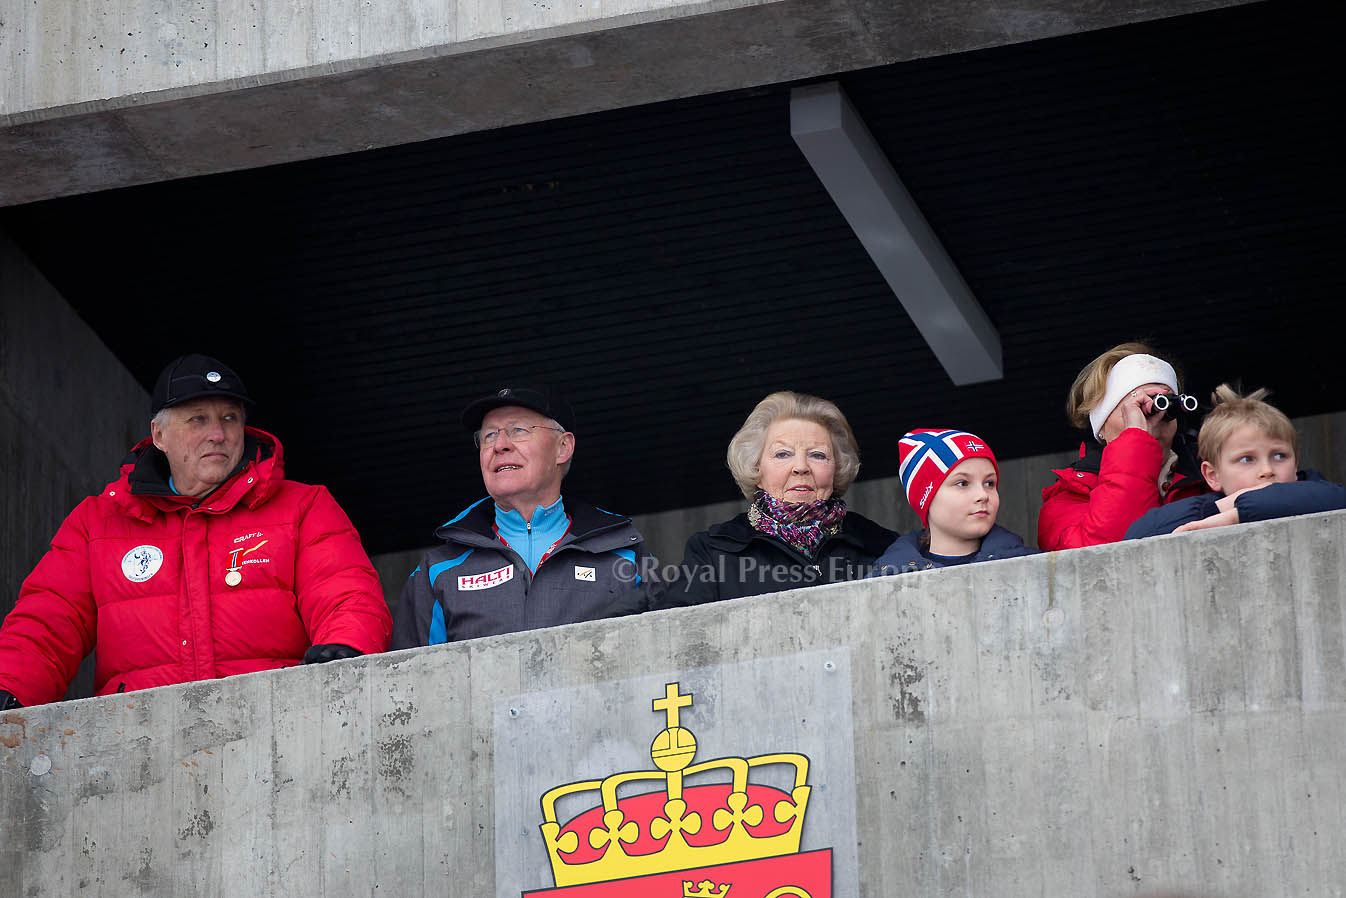 Princess Beatrix joins Norwegian King Harald, Queen Sonja at Holmenkollen Ski Jump Championships